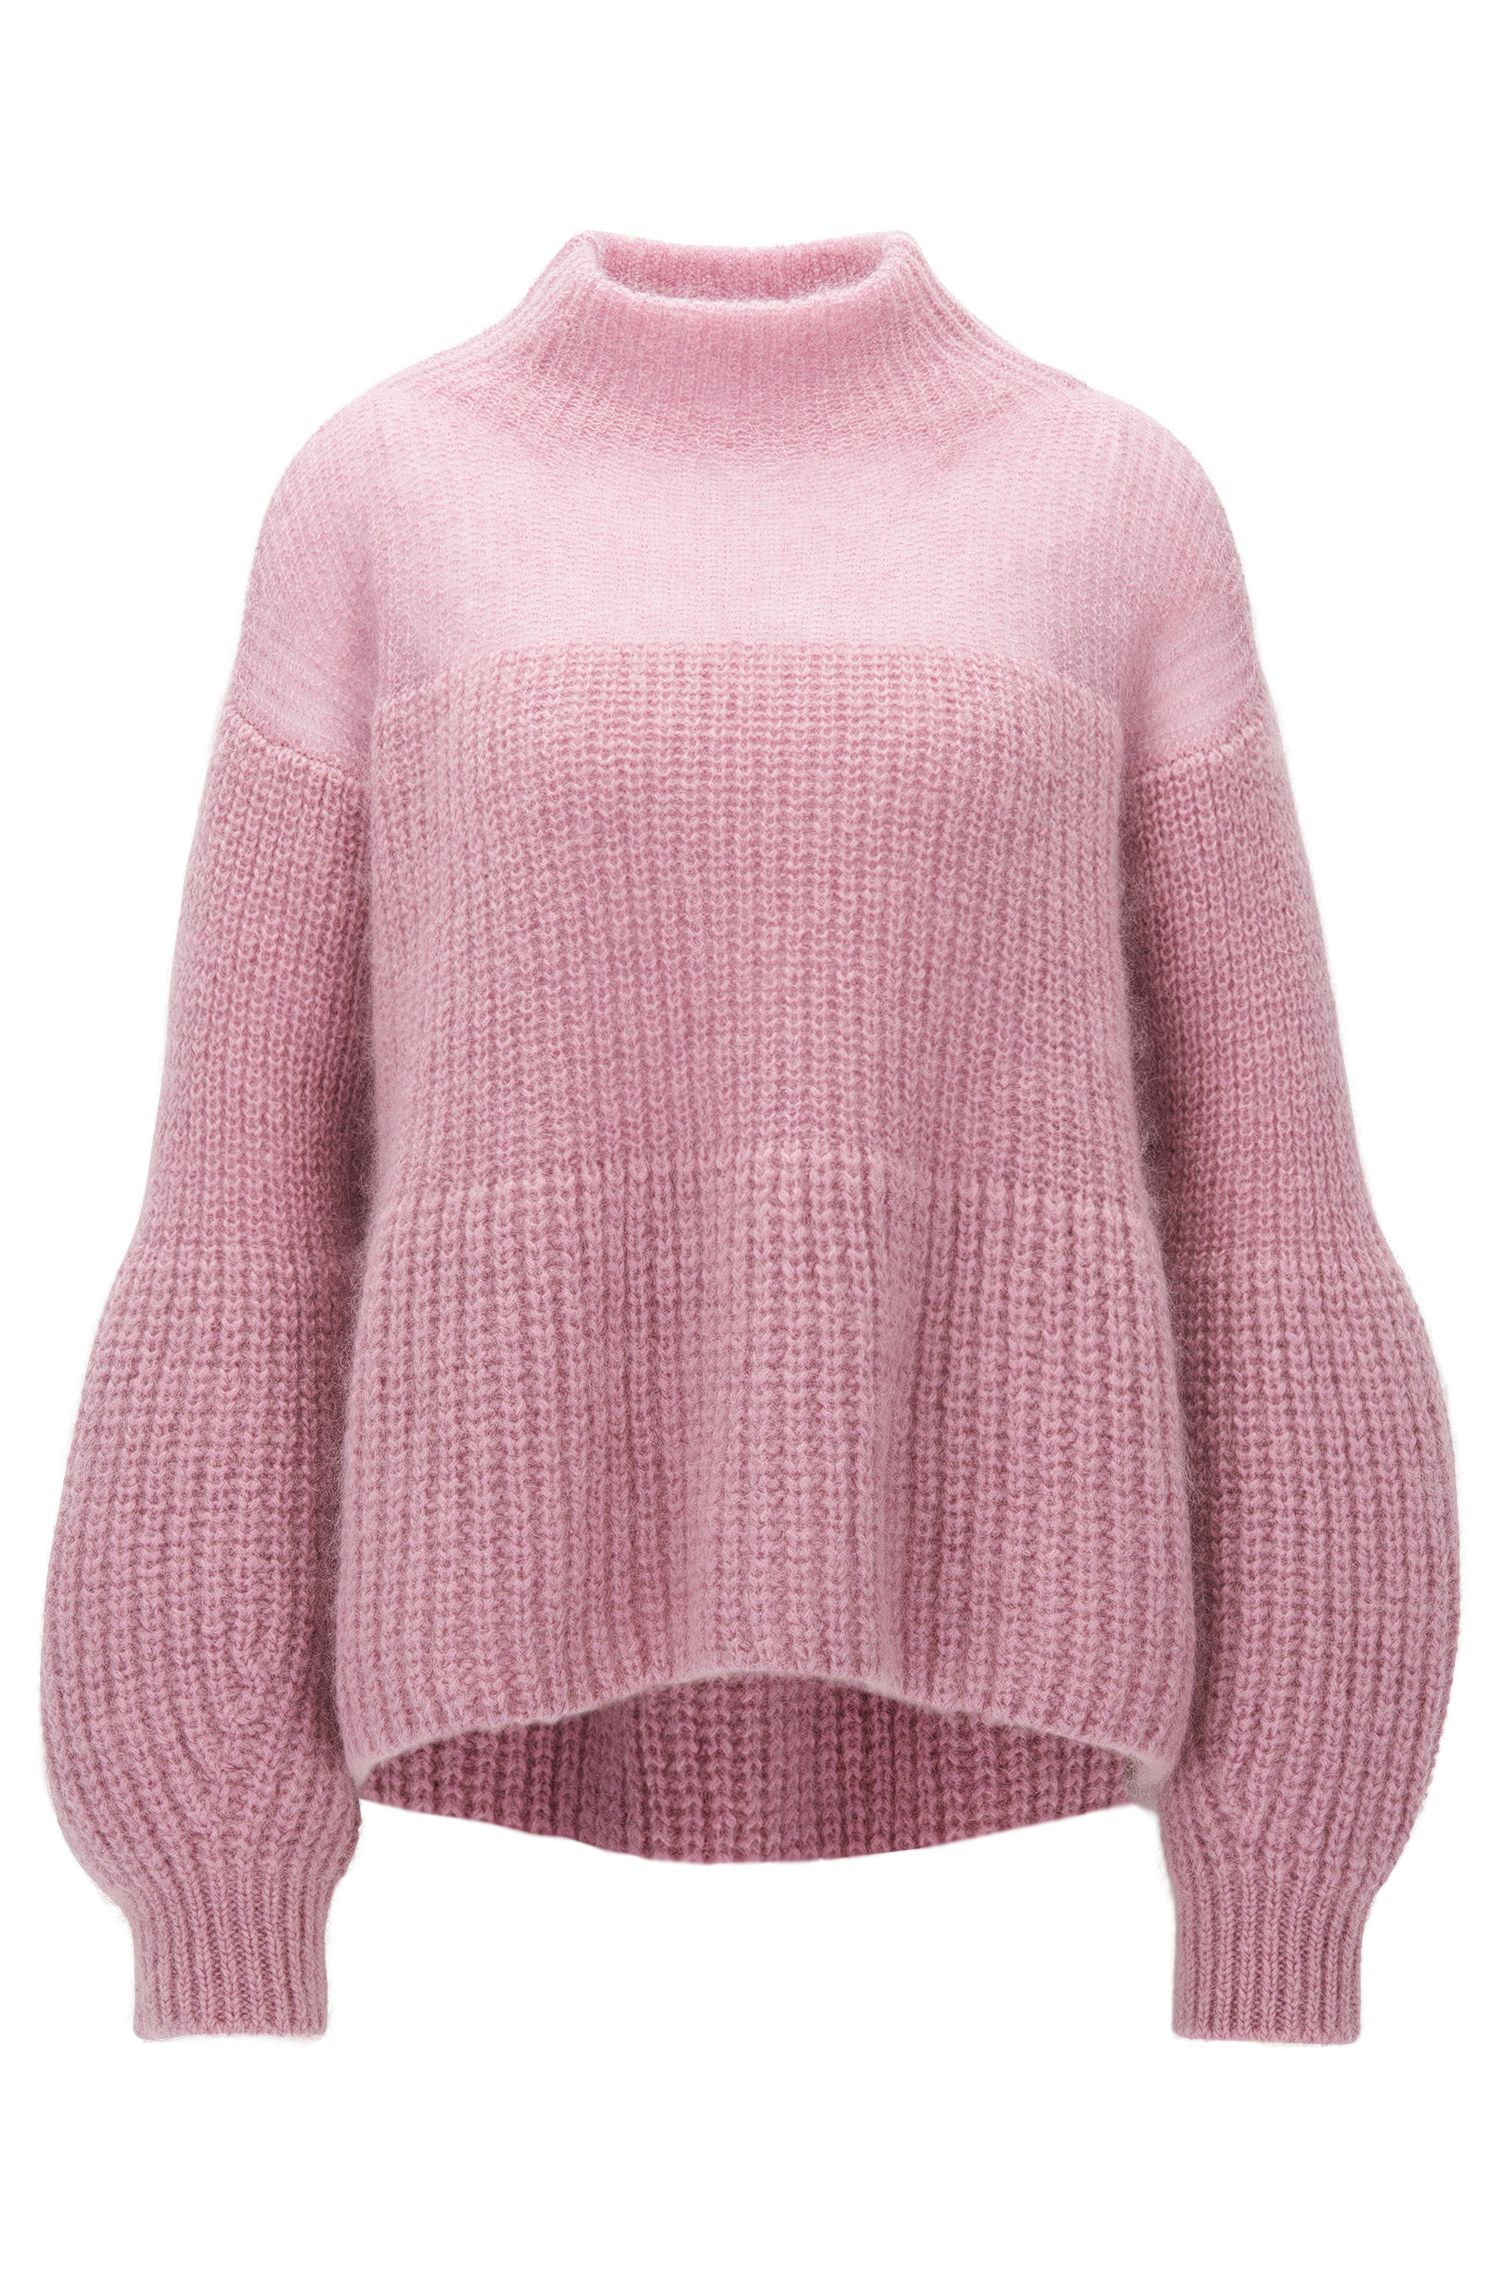 A-line sweater in a knitted mohair blend